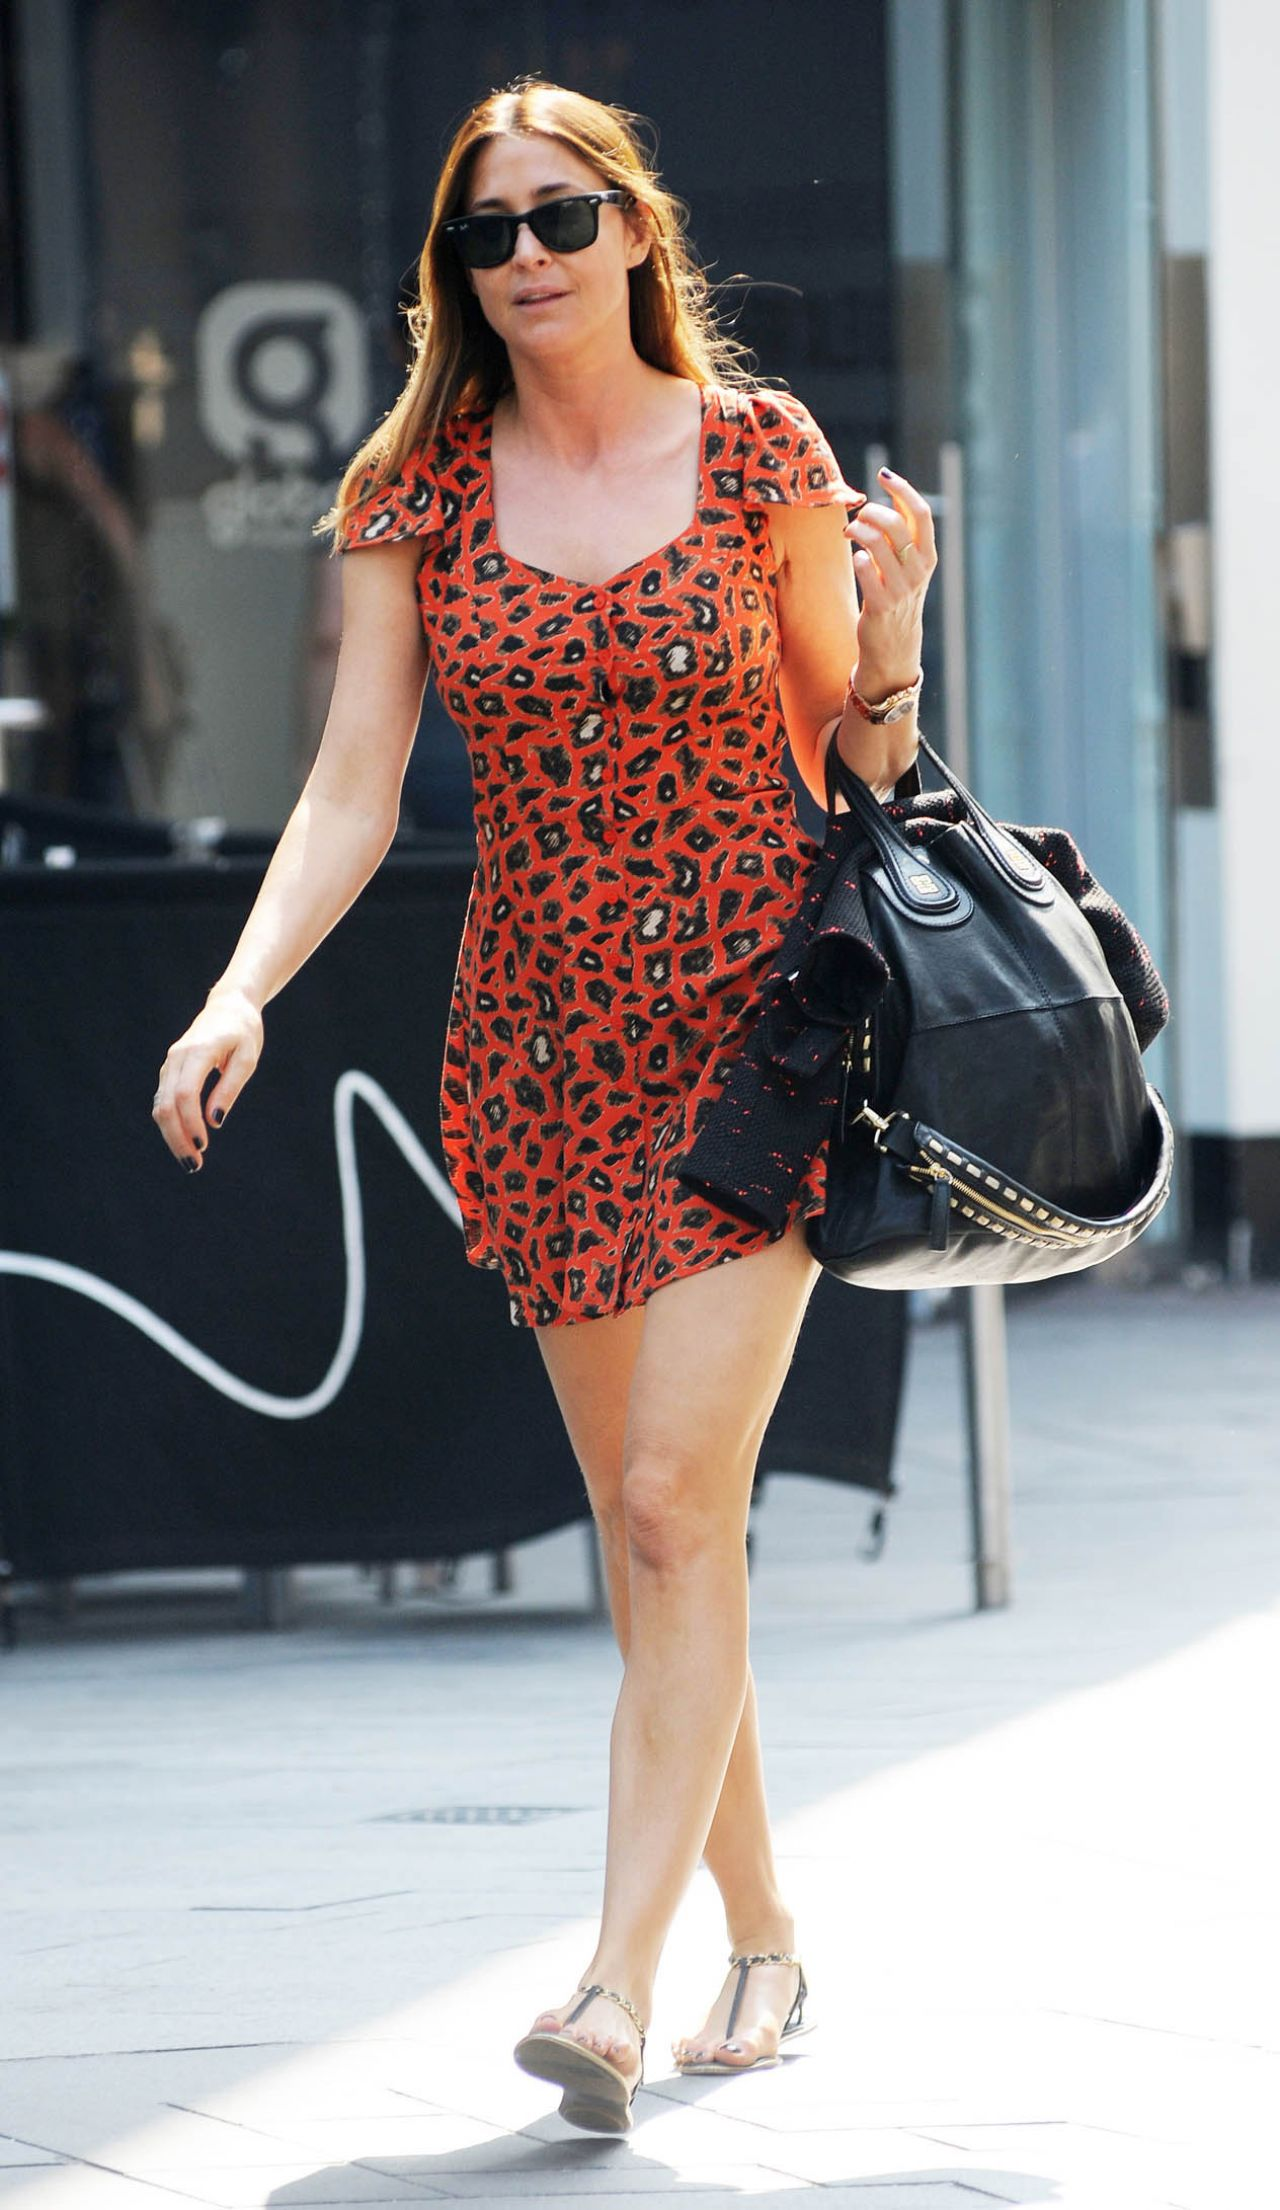 Lisa Snowdon in Mini Dress - Leicester Square in London, July 2014